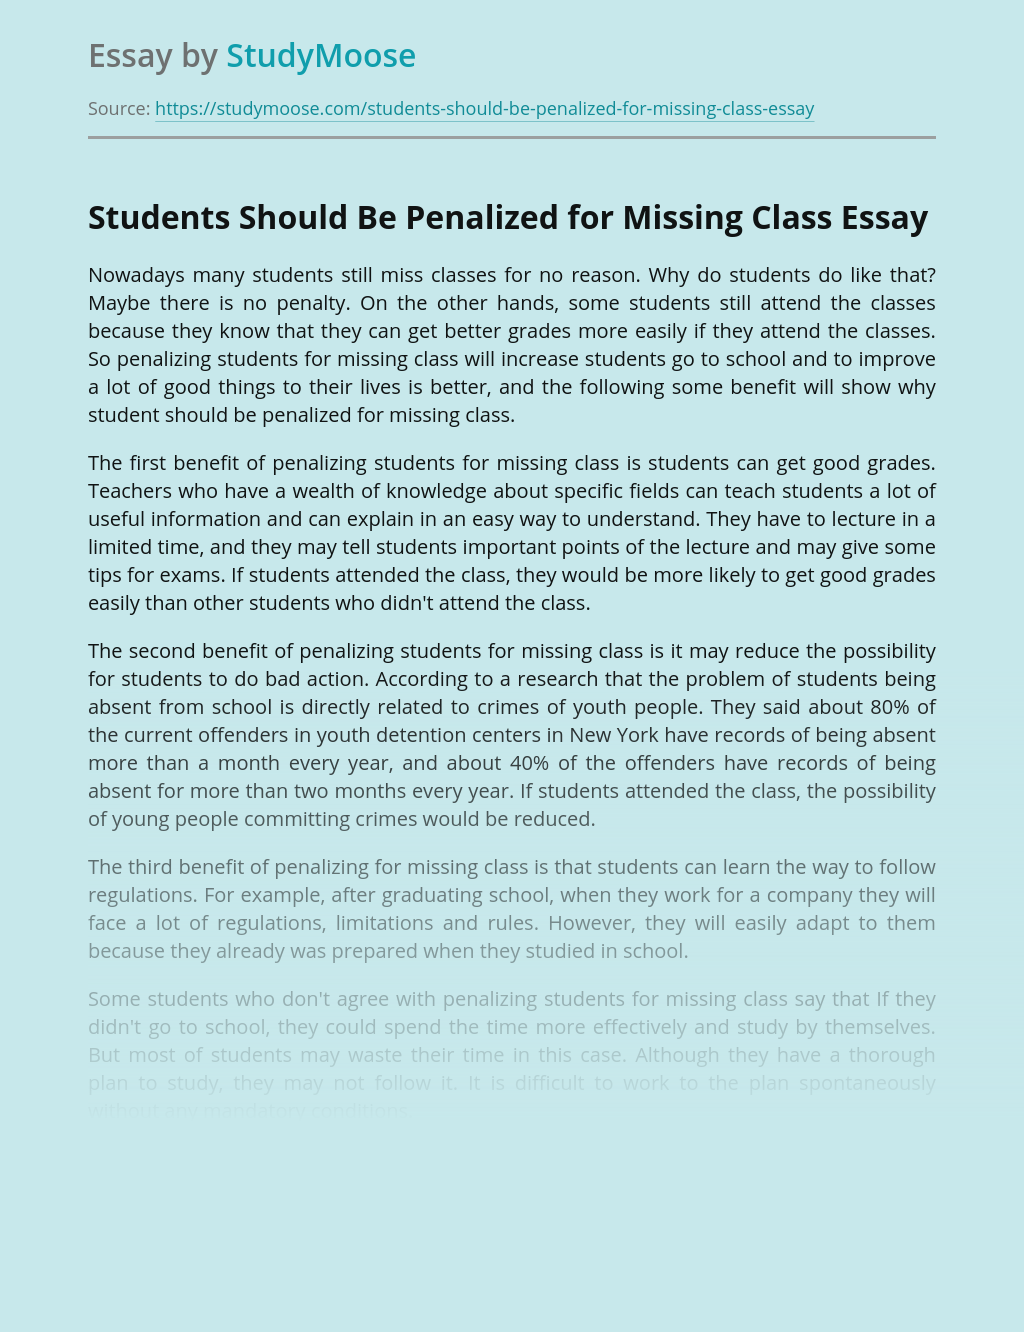 Students Should Be Penalized for Missing Class